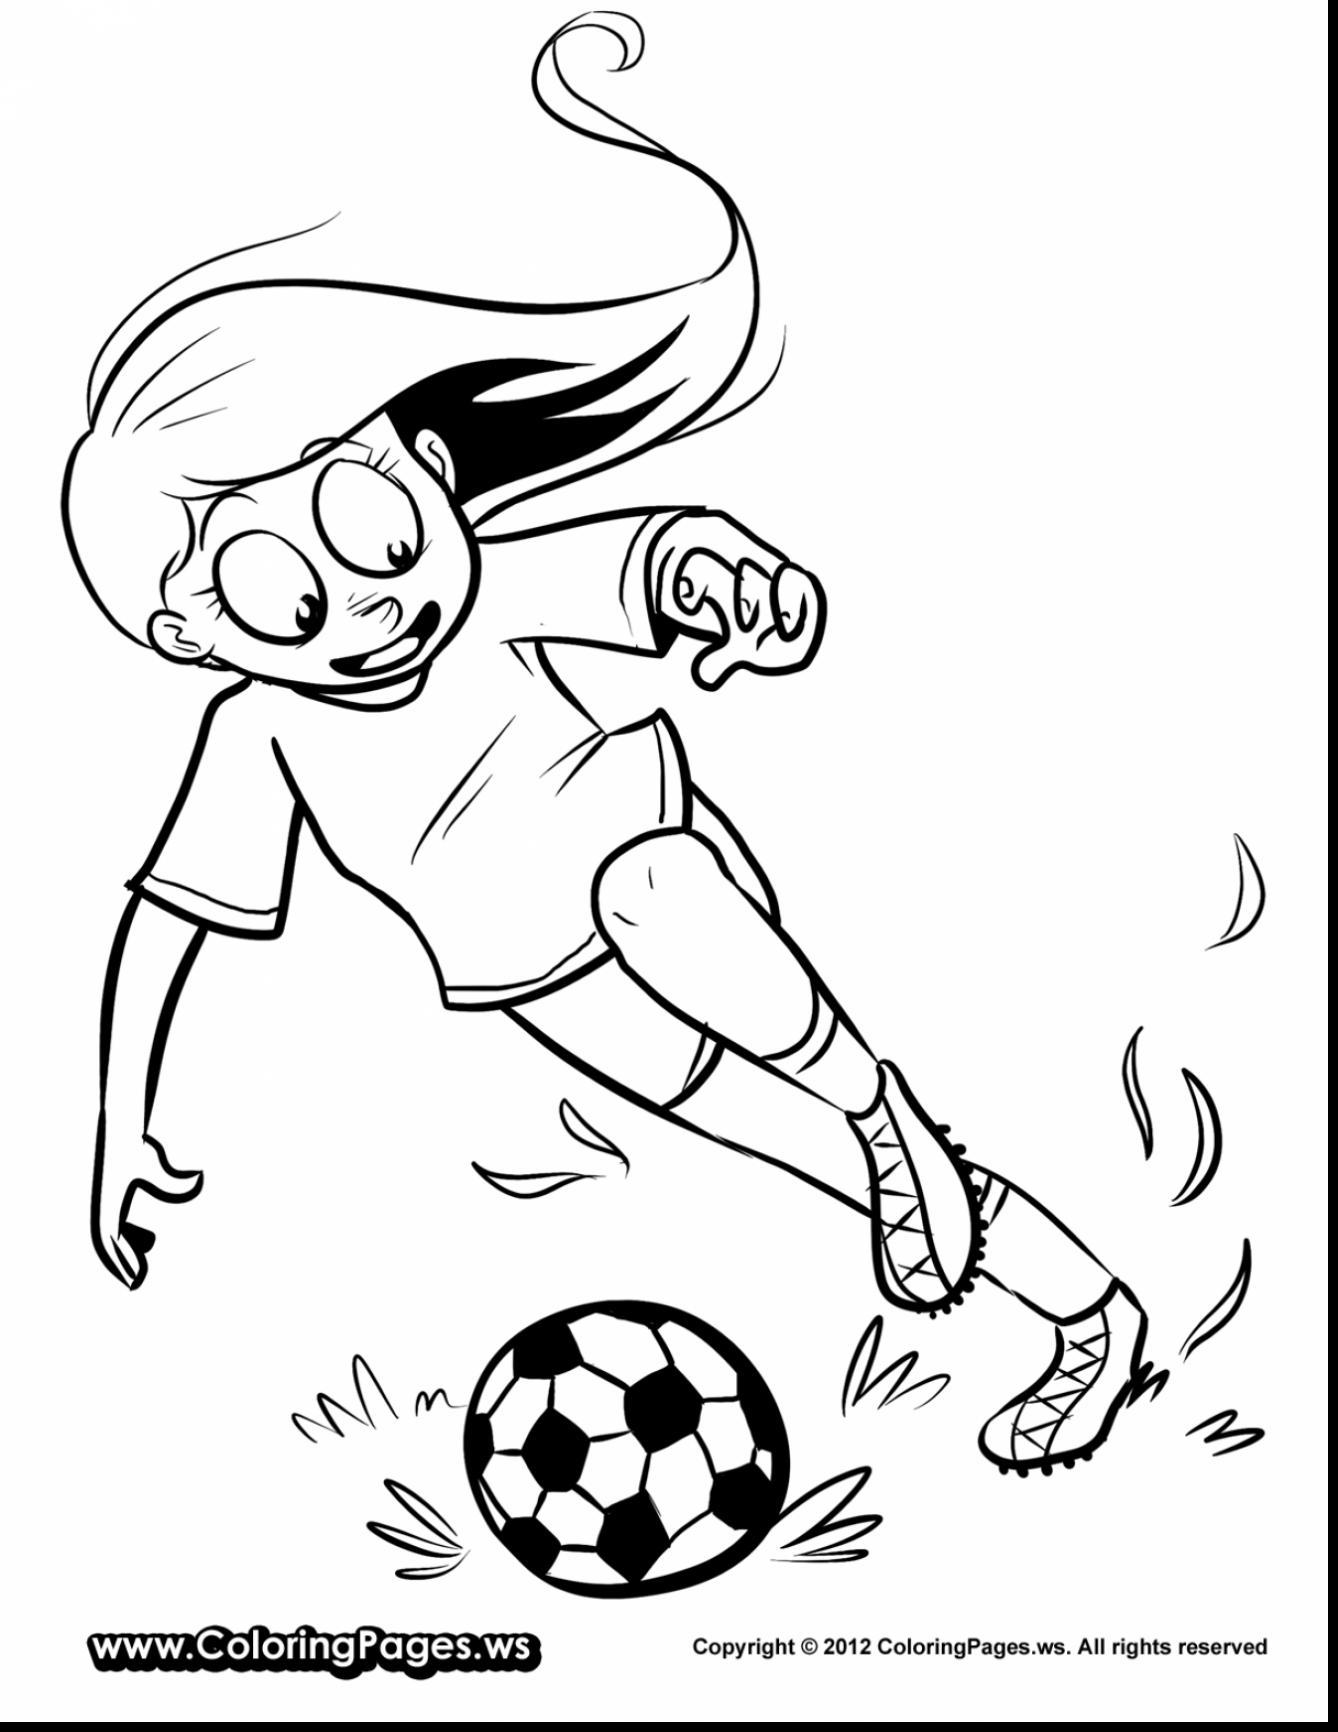 1338x1732 Shocking Extraordinary Girl Soccer Player Coloring With Pict